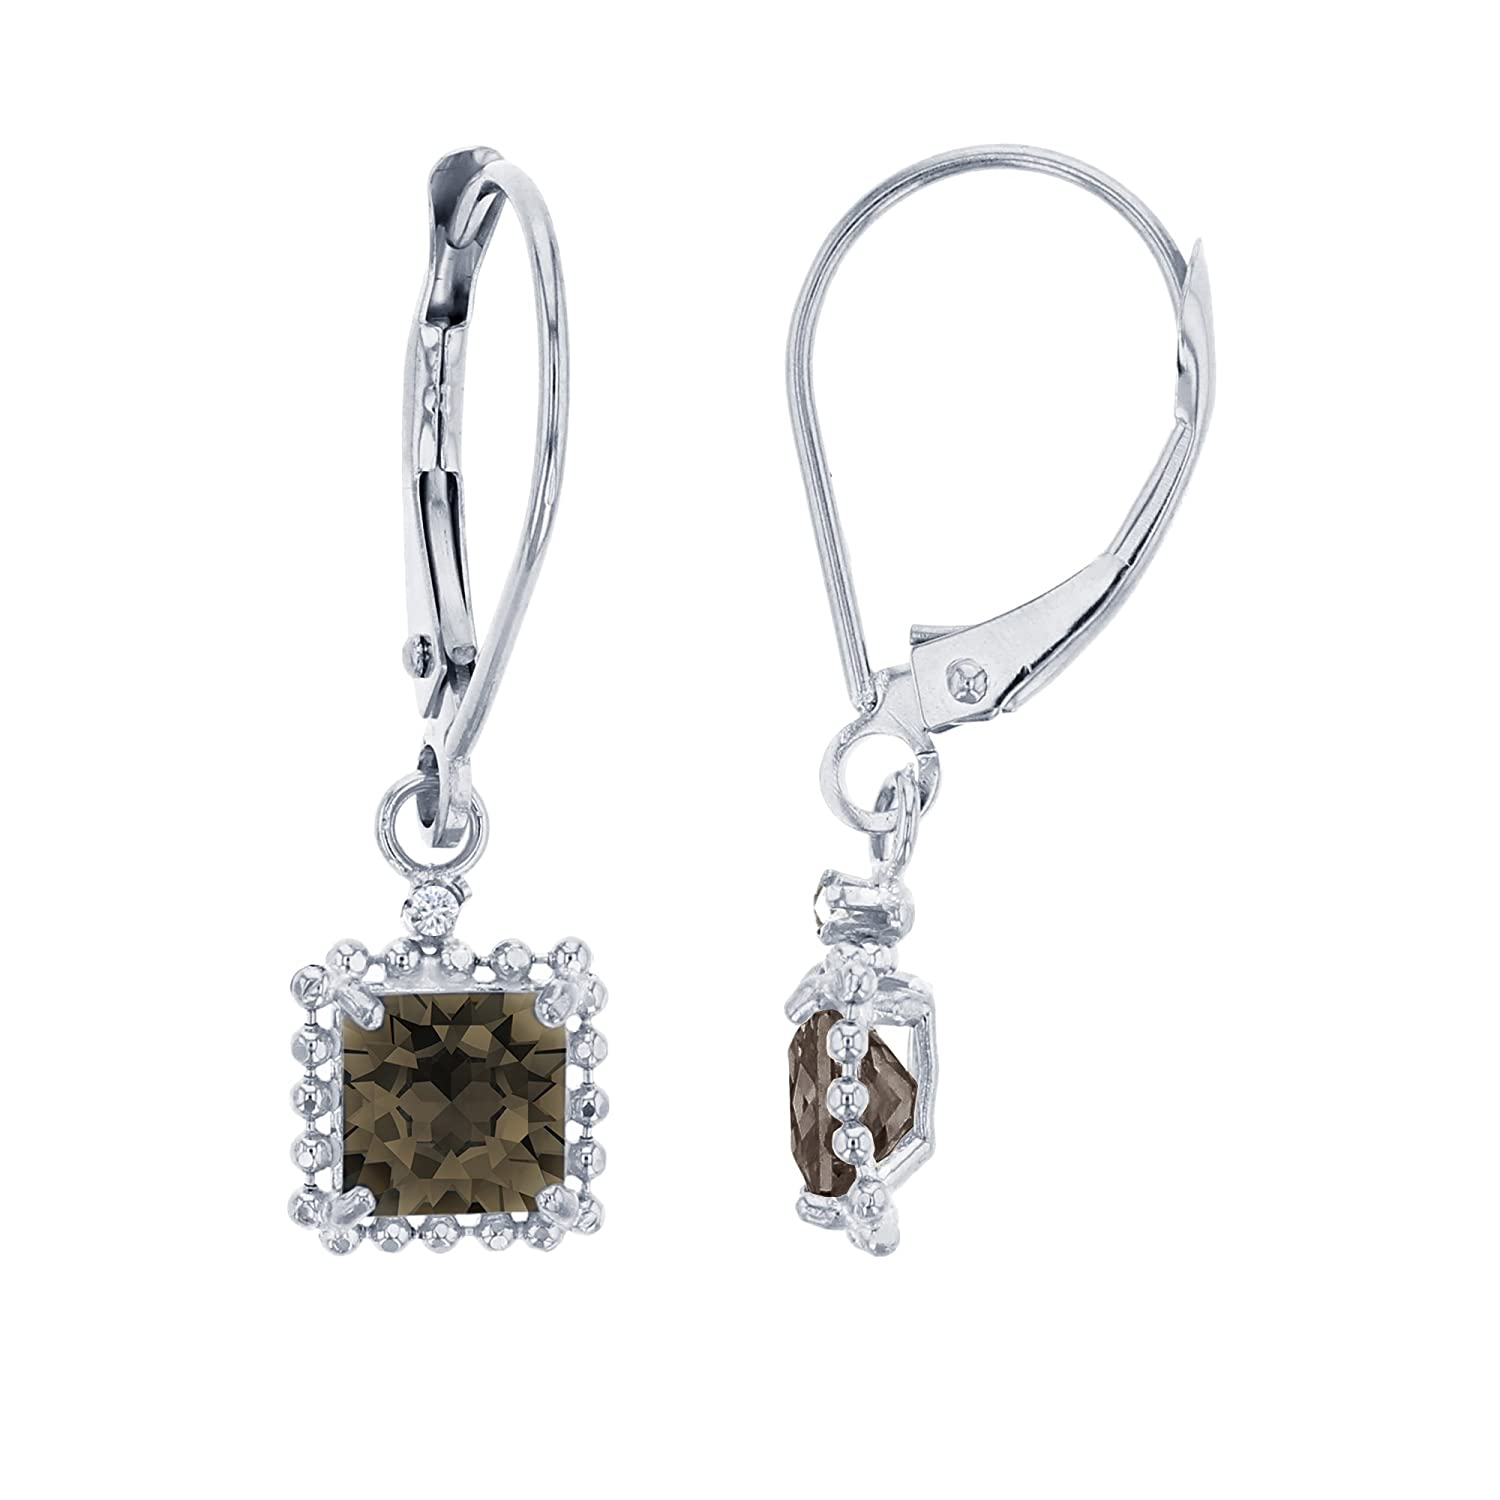 14K White Gold 1.25mm Round /& 5mm Square Bead Frame Drop Leverback Earring